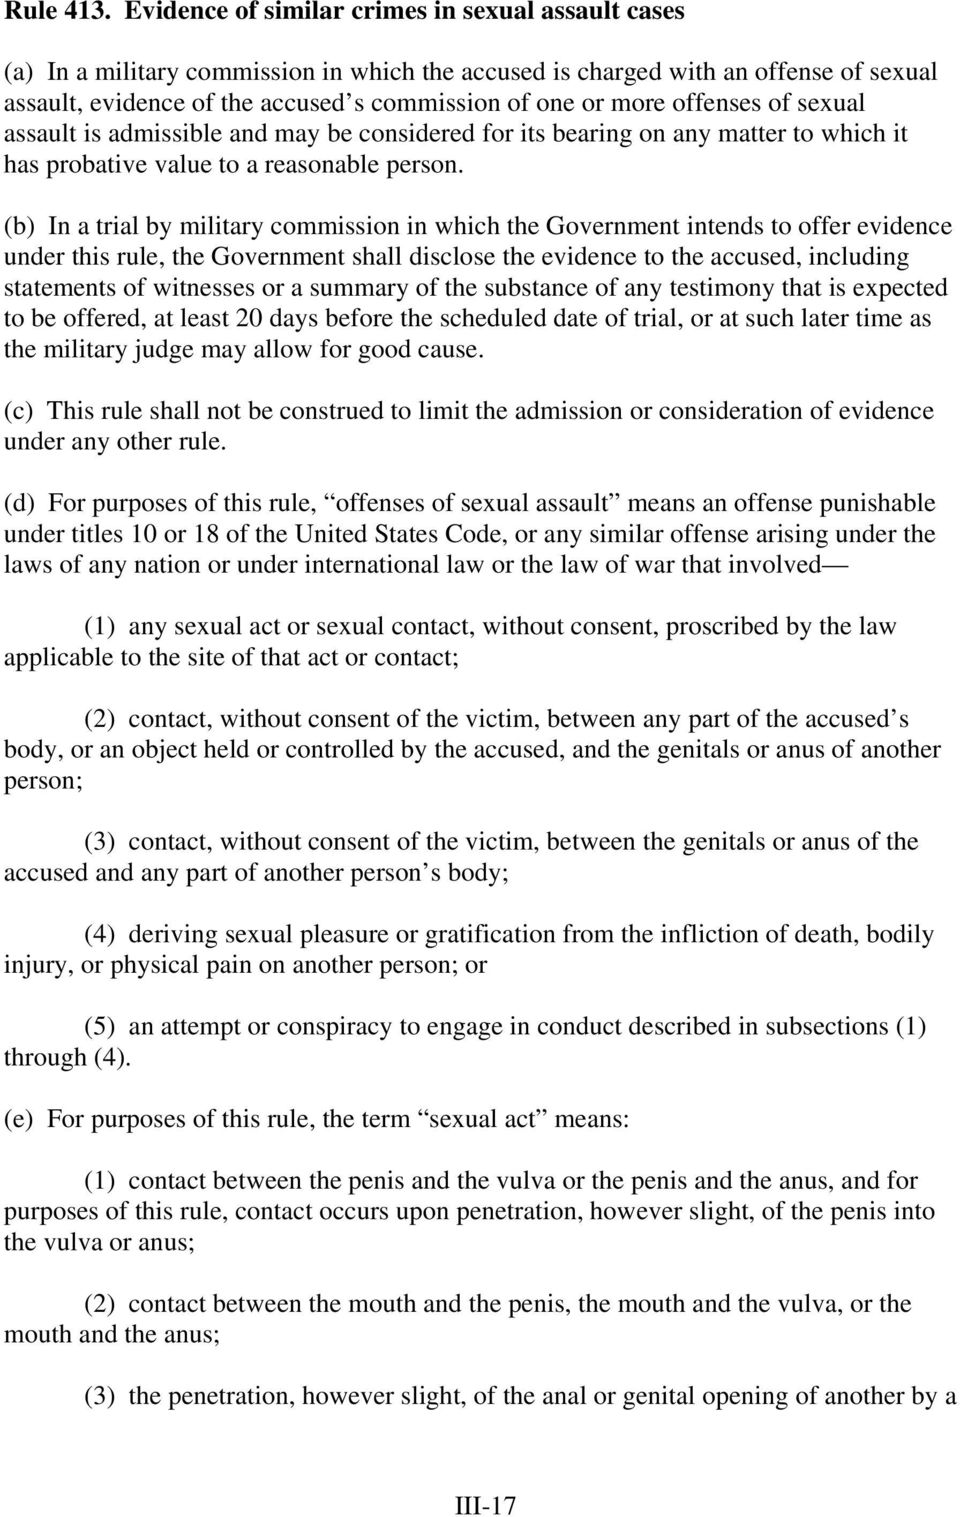 offenses of sexual assault is admissible and may be considered for its bearing on any matter to which it has probative value to a reasonable person.